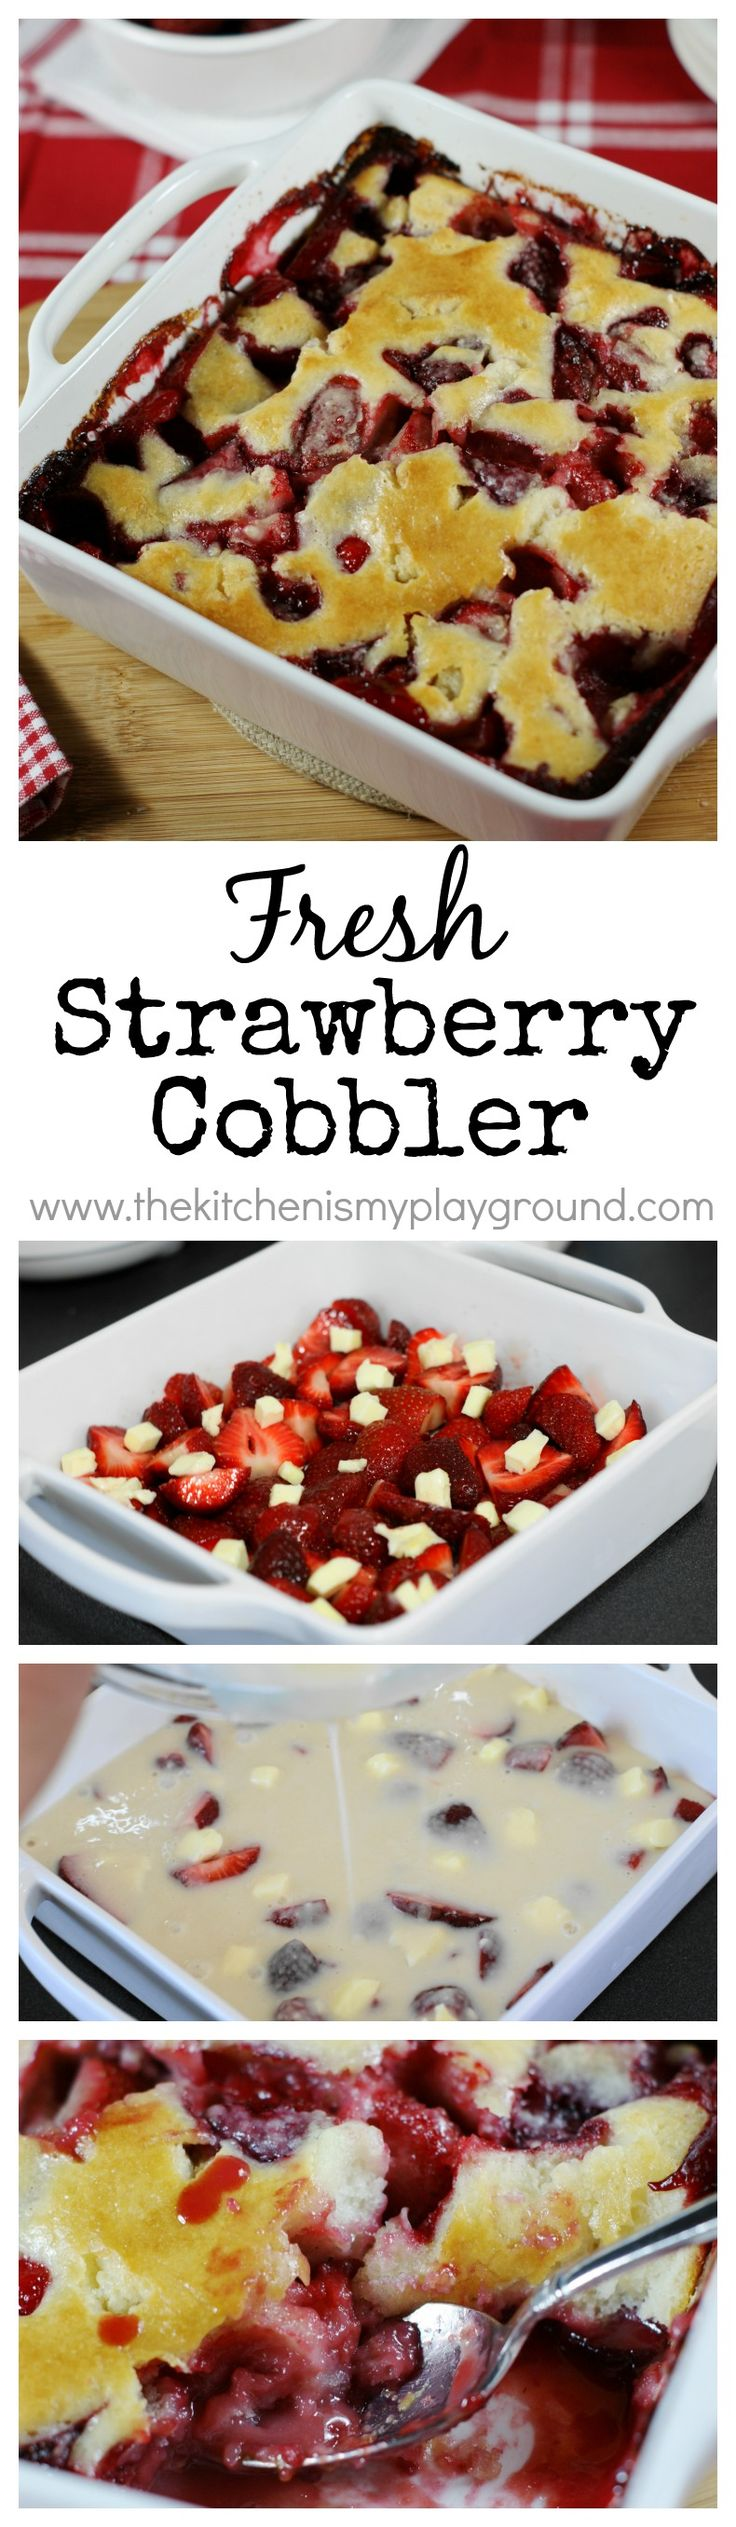 Scrumptious Fresh Strawberry Cobbler ~ there's just nothing better than juicy fresh strawberries, except for maybe fresh strawberry cobbler!  www.thekitchenismyplayground.com